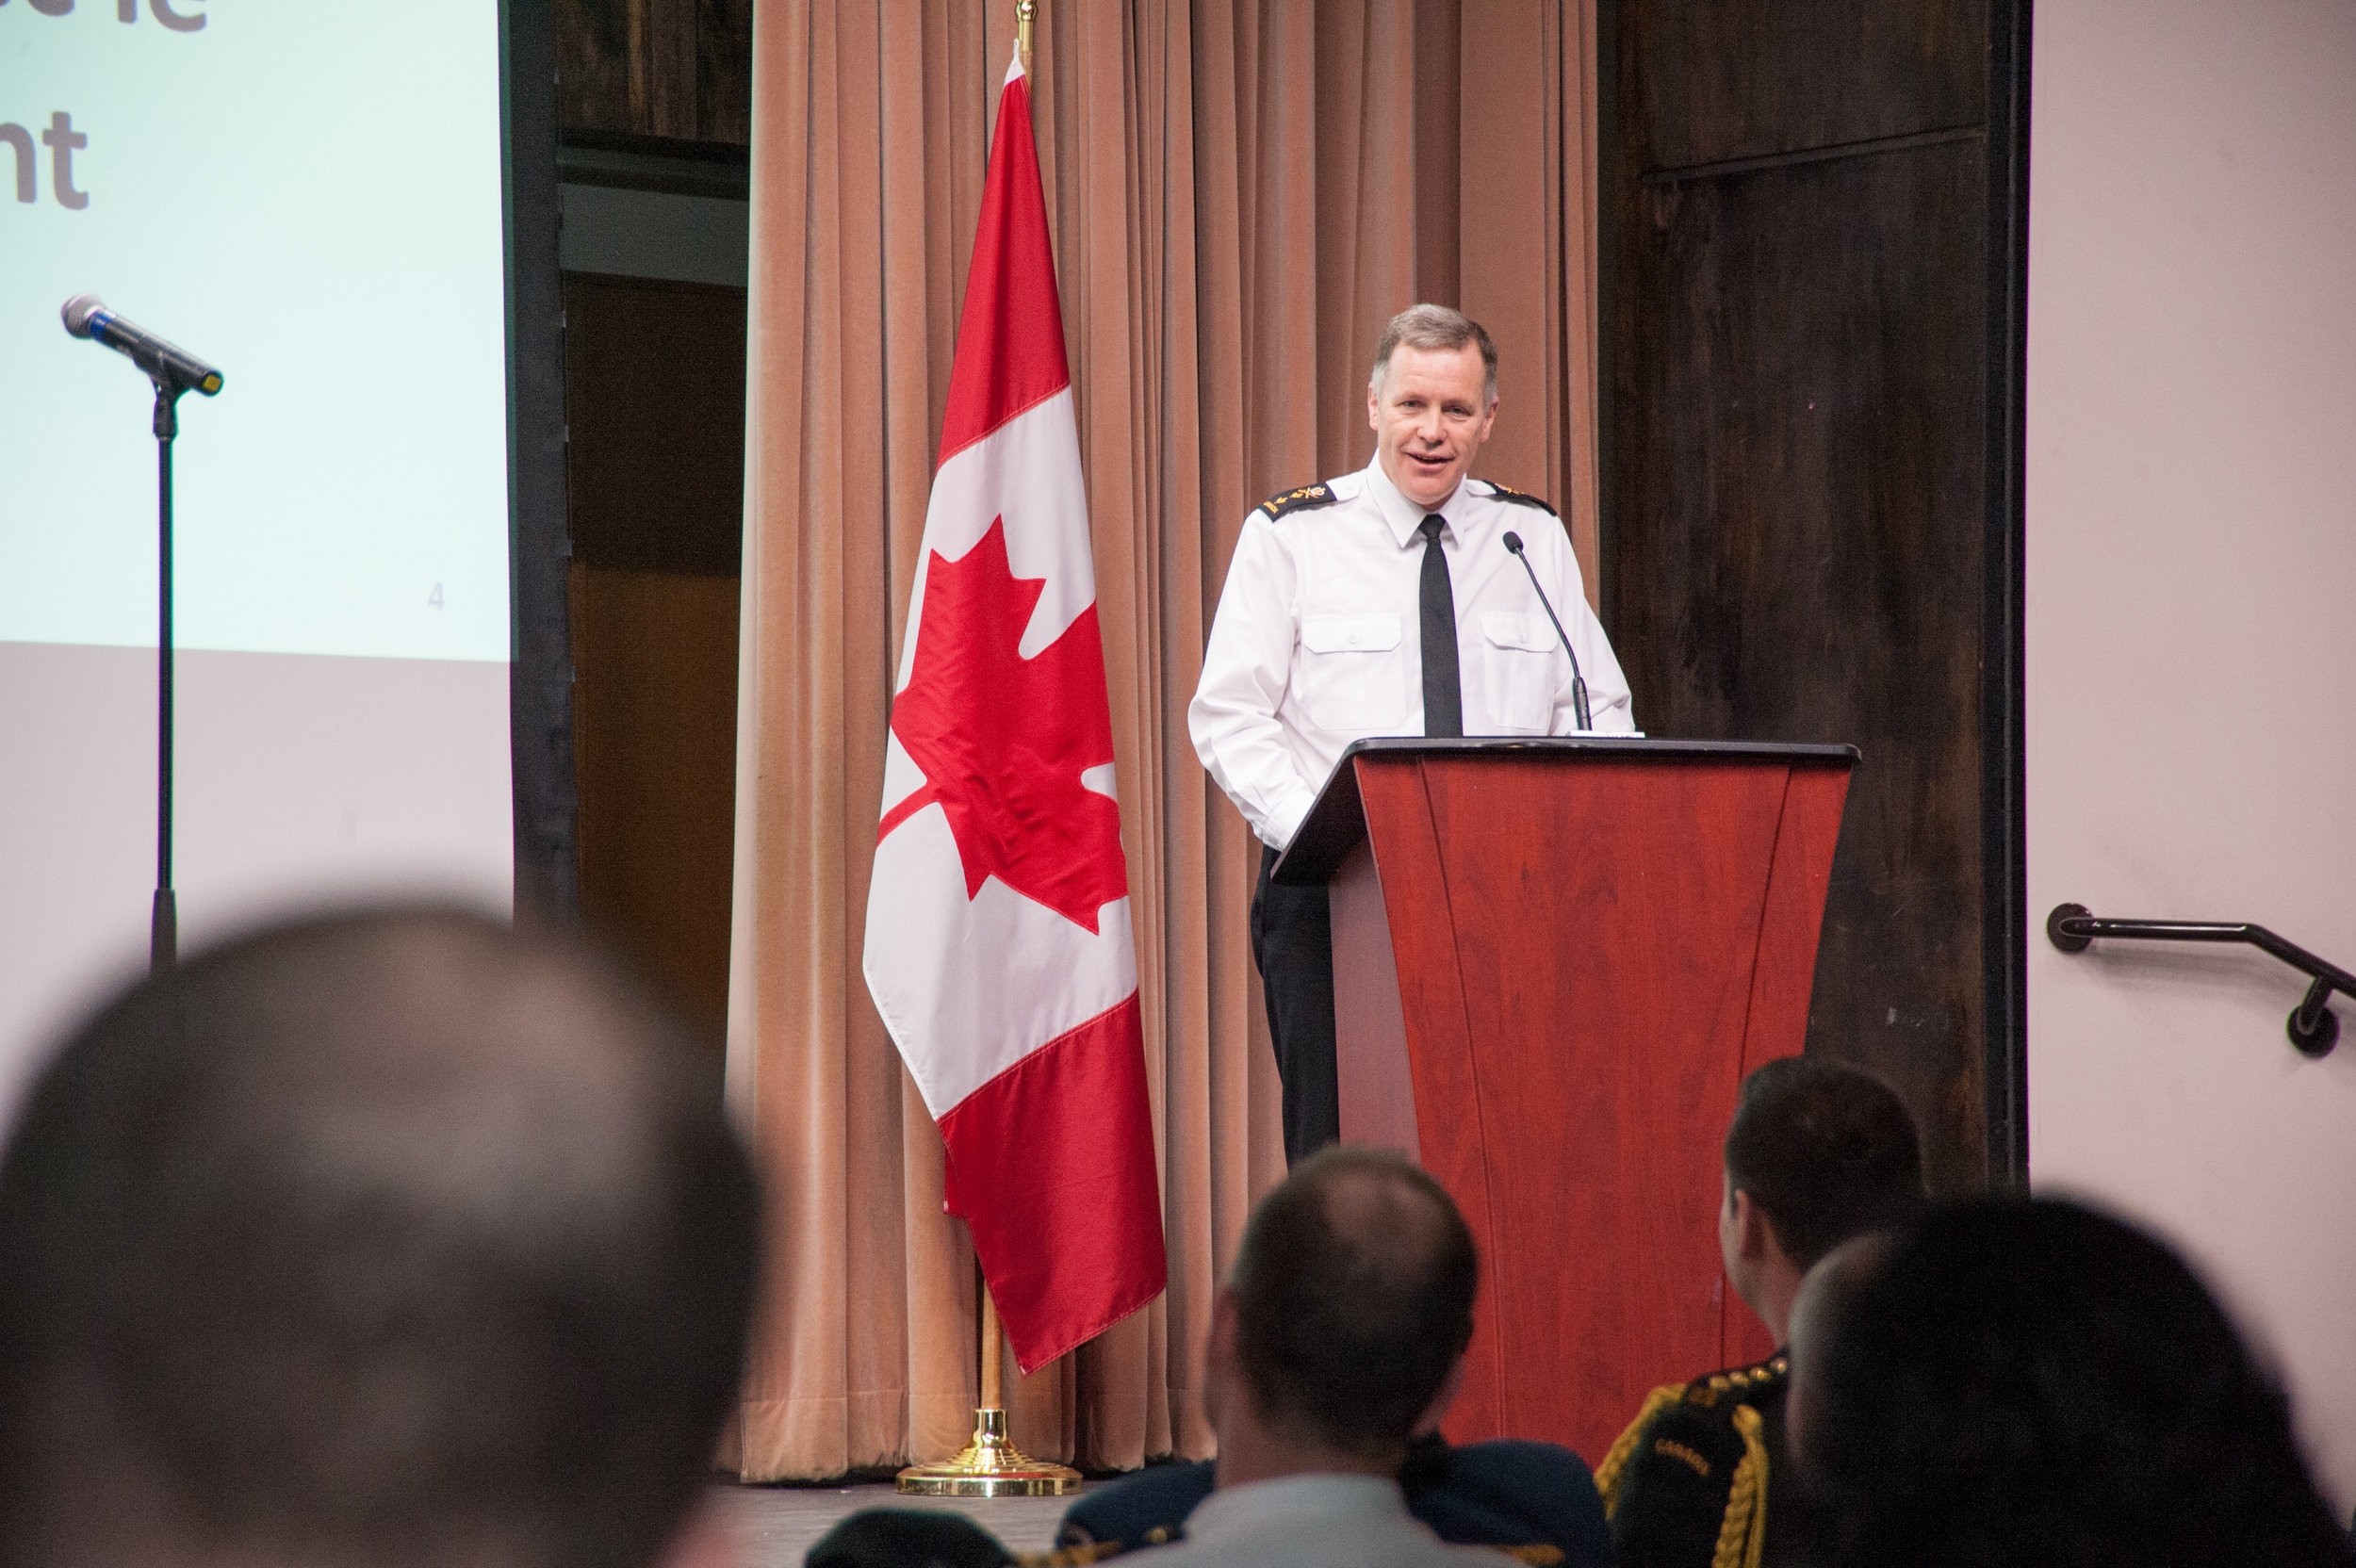 Rear-Admiral Scott Bishop addresses members of the Canadian Forces Intelligence Group. Serving his country since 1983, Bishop was appointed Commander of the Canadian Forces Intelligence Command and Chief of Defence Intelligence in June of 2016. Prior to taking the helm of CFINTCOM, he commanded both the Pacific and Atlantic fleets. (dnd)